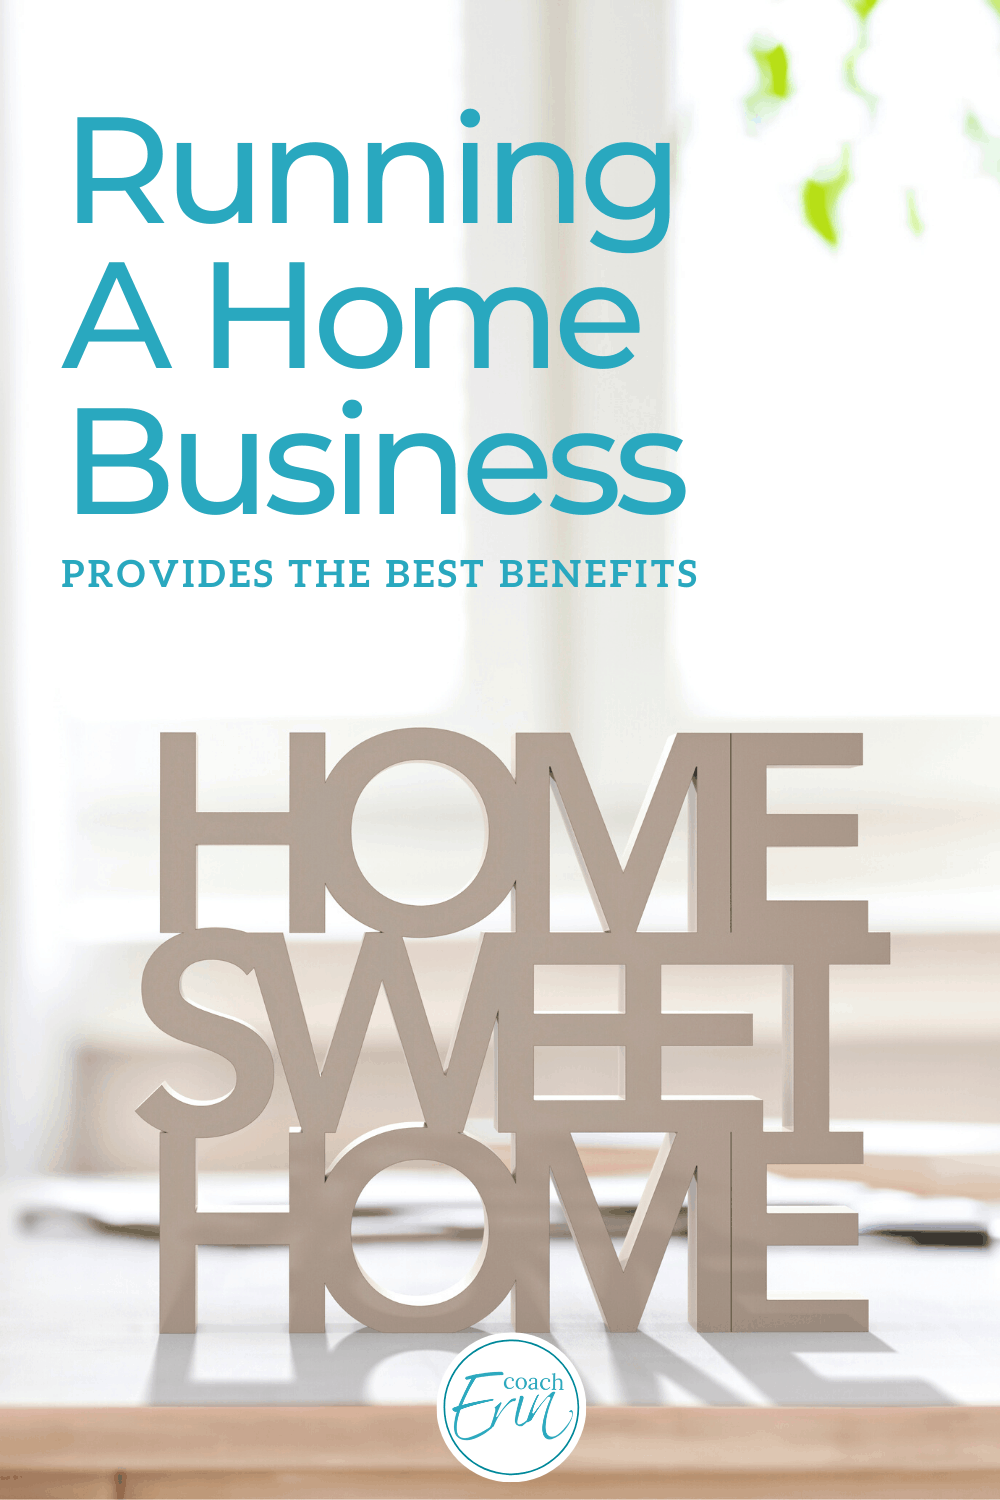 Best Benefits of A Home Business